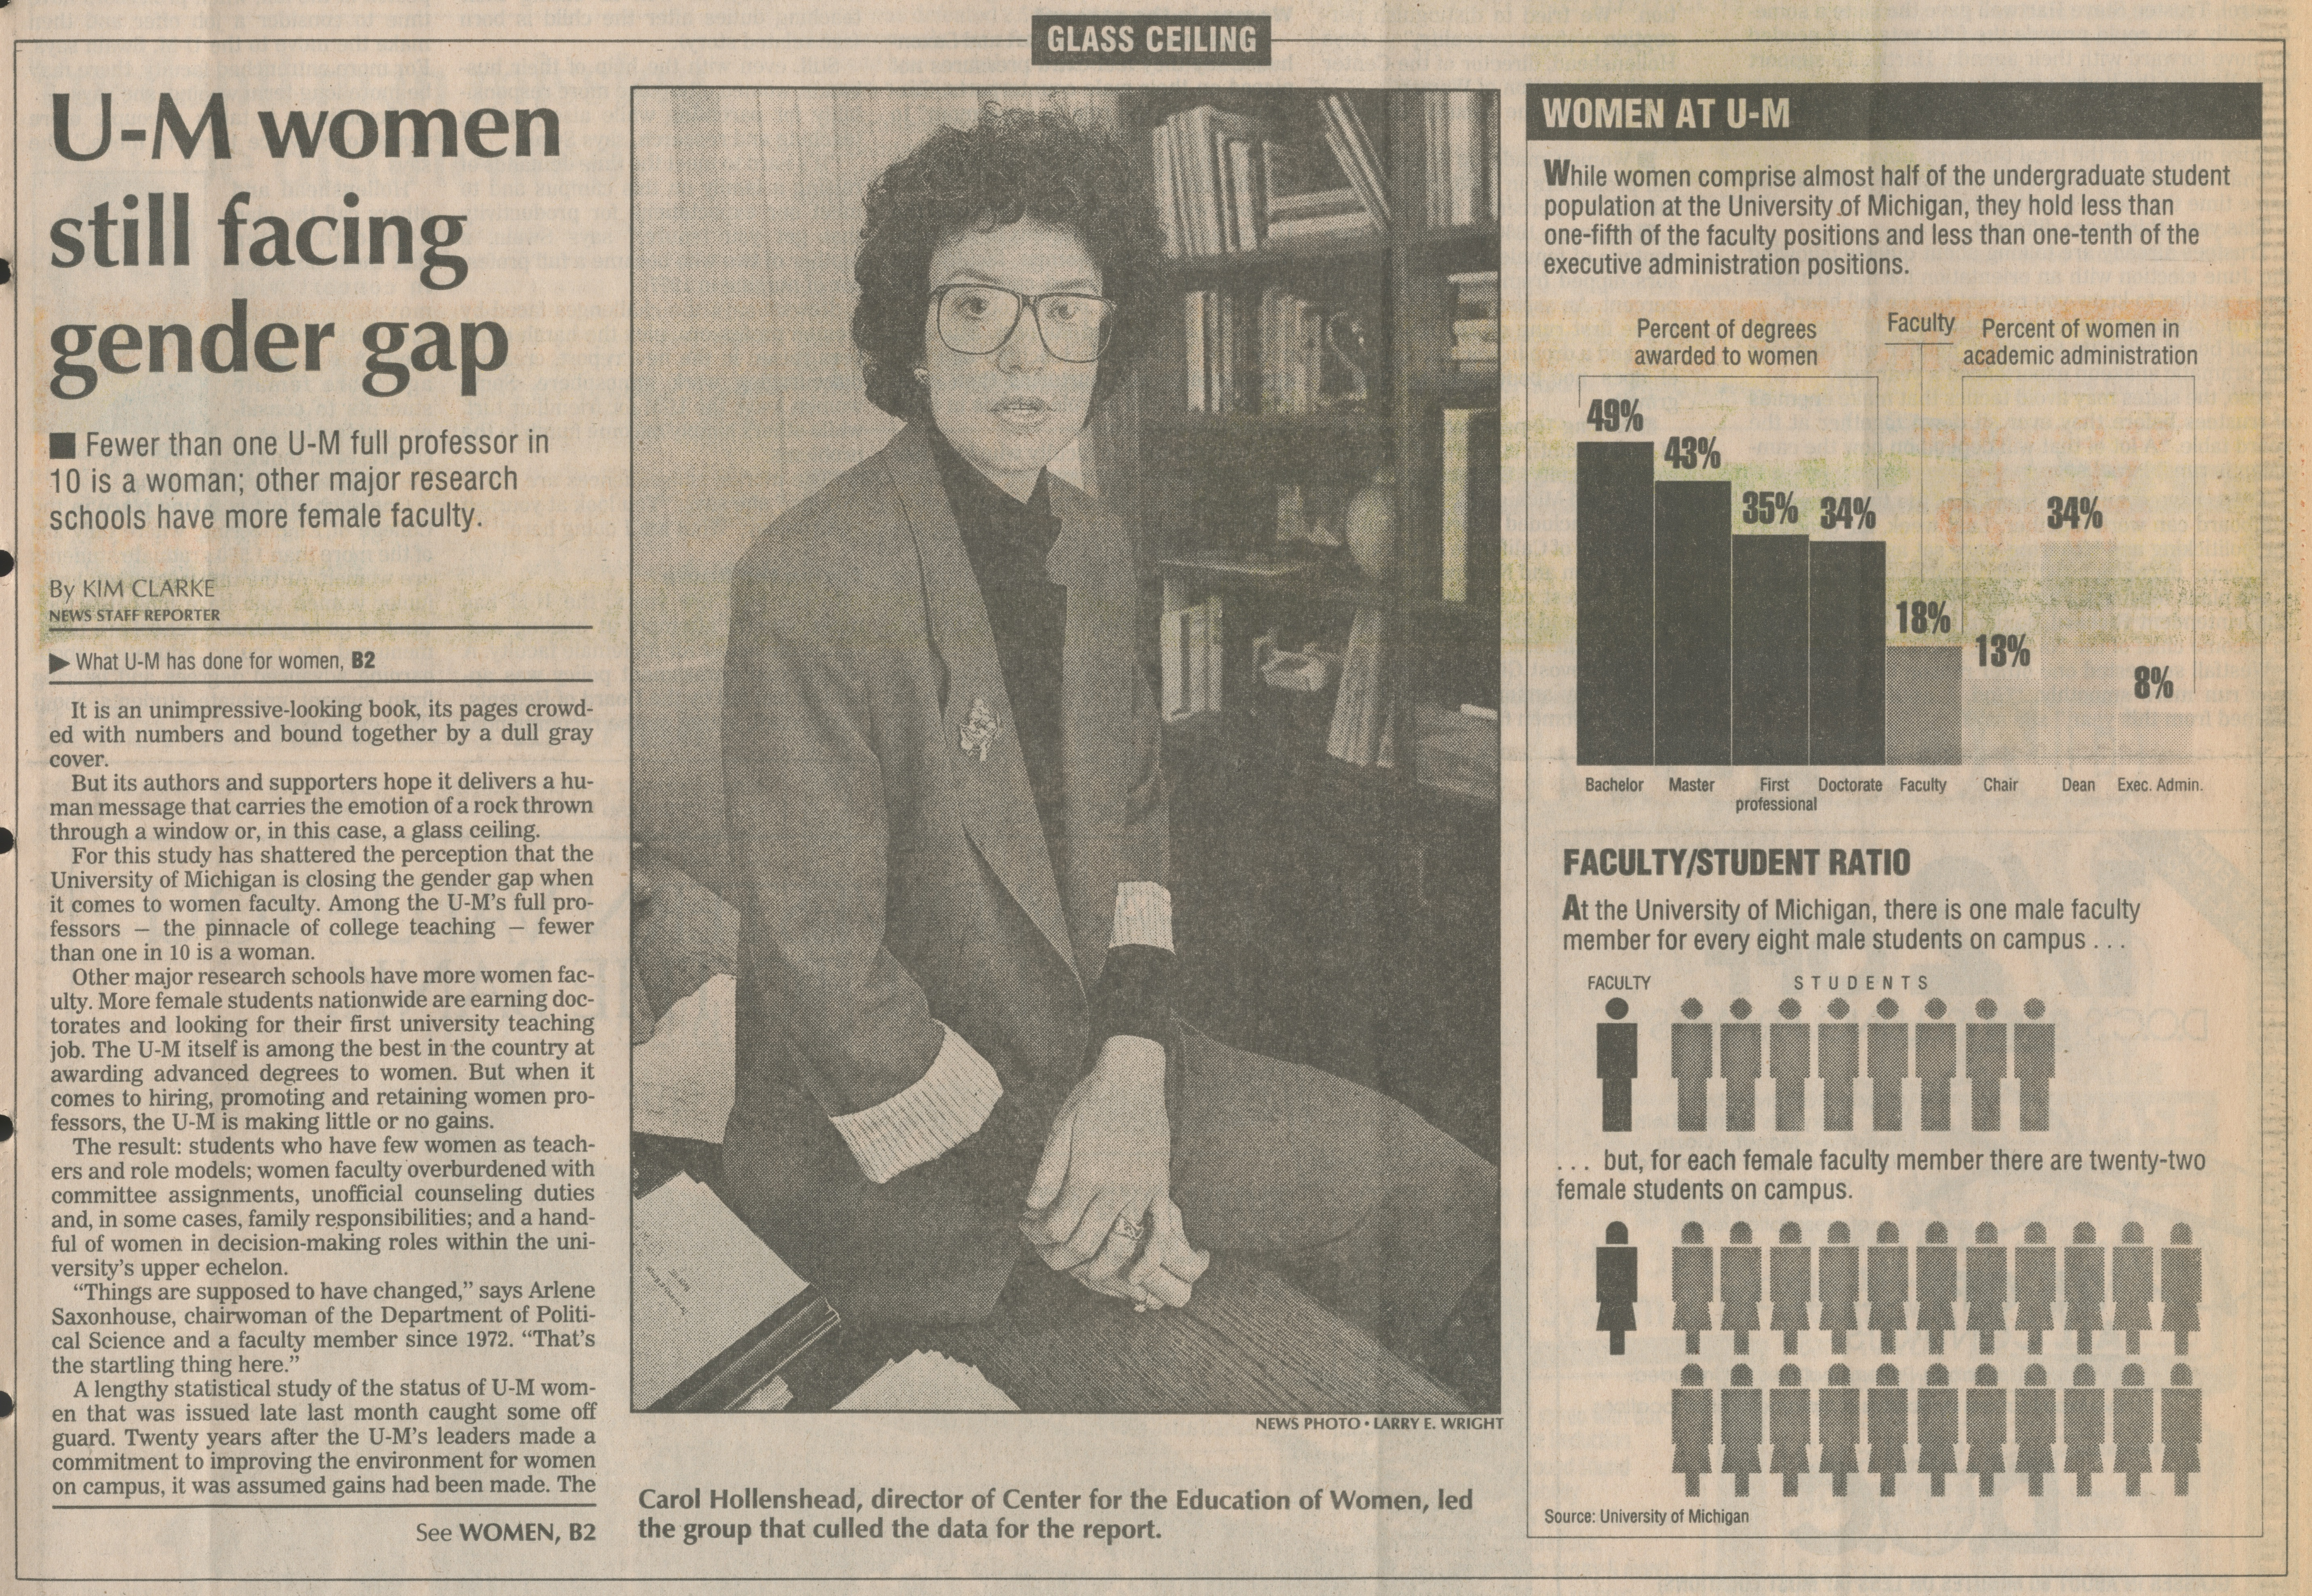 U-M women still facing gender gap image